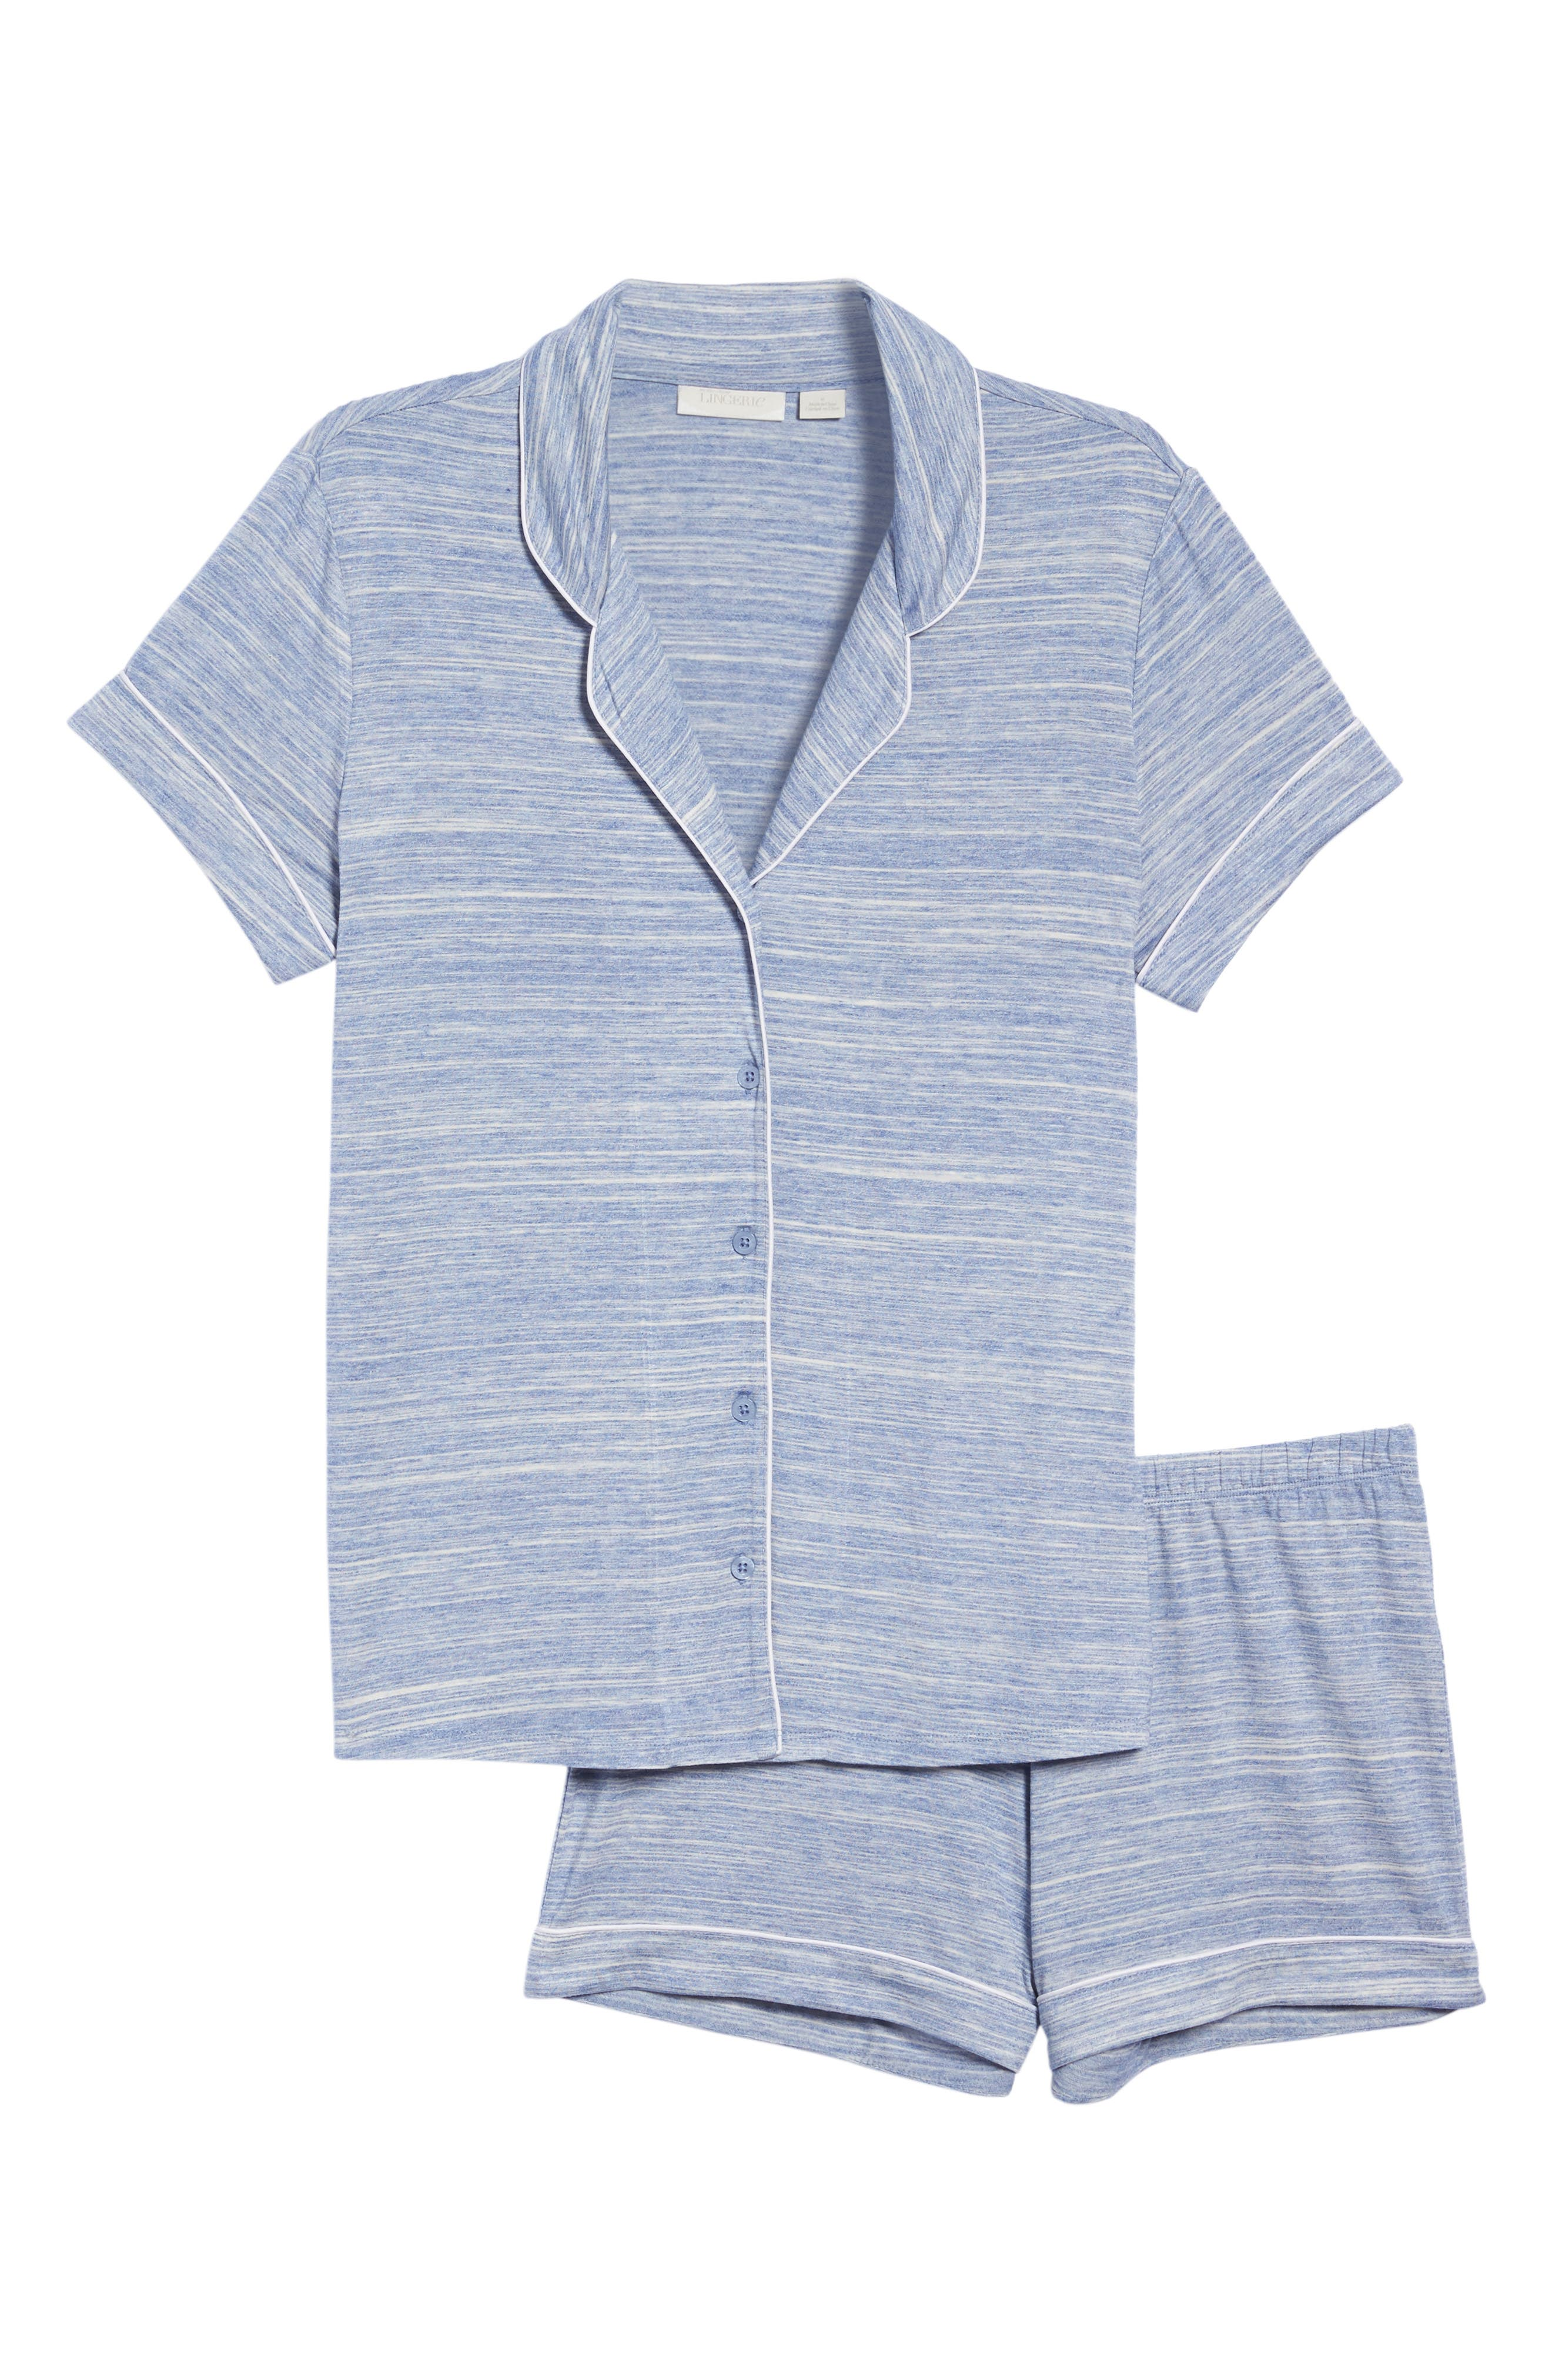 Alternate Image 4  - Nordstrom Lingerie 'Moonlight' Short Pajamas